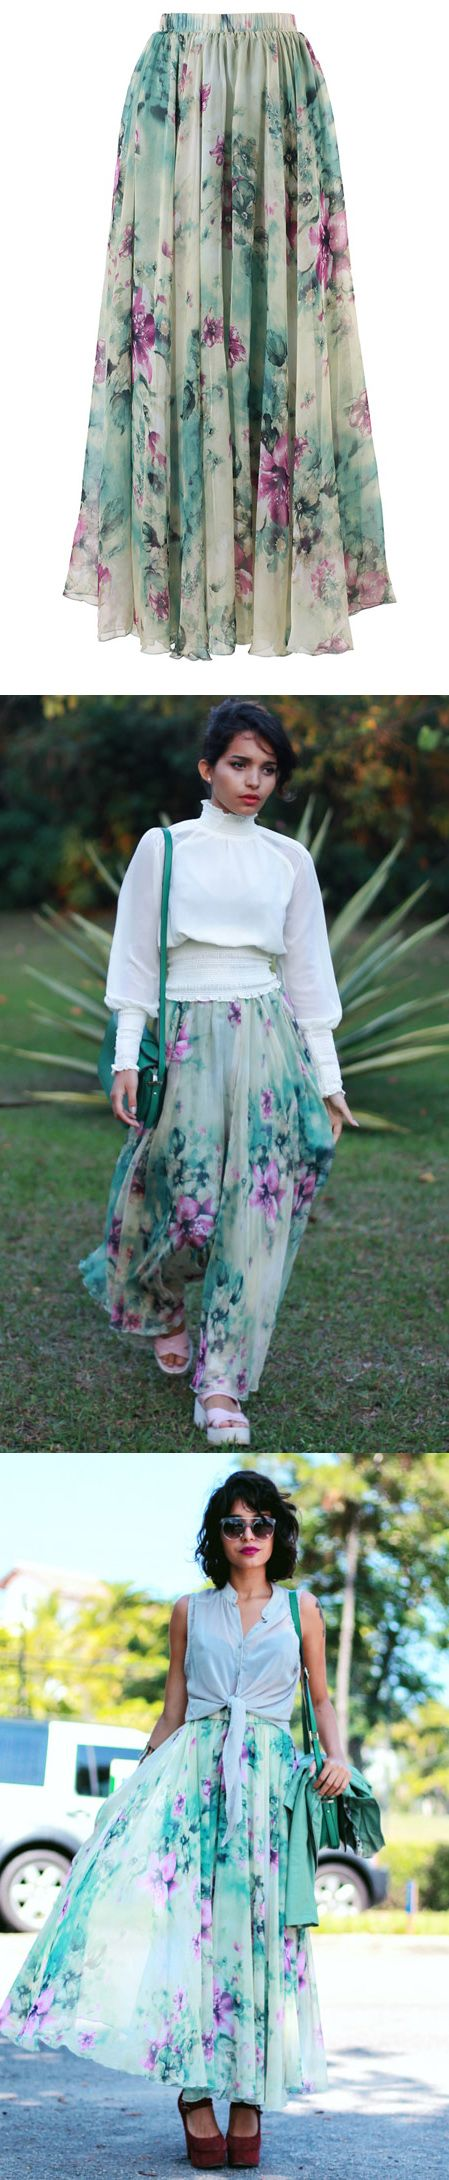 This maxi skirt has been crafted from silky fabric, featuring retro floral print through the whole skirt. Whether you're attending a party or strutting into your best friend's wedding, this fit-and-flare, floral maxi skirt helps set the stage for a memorable occasion! @alanaruas